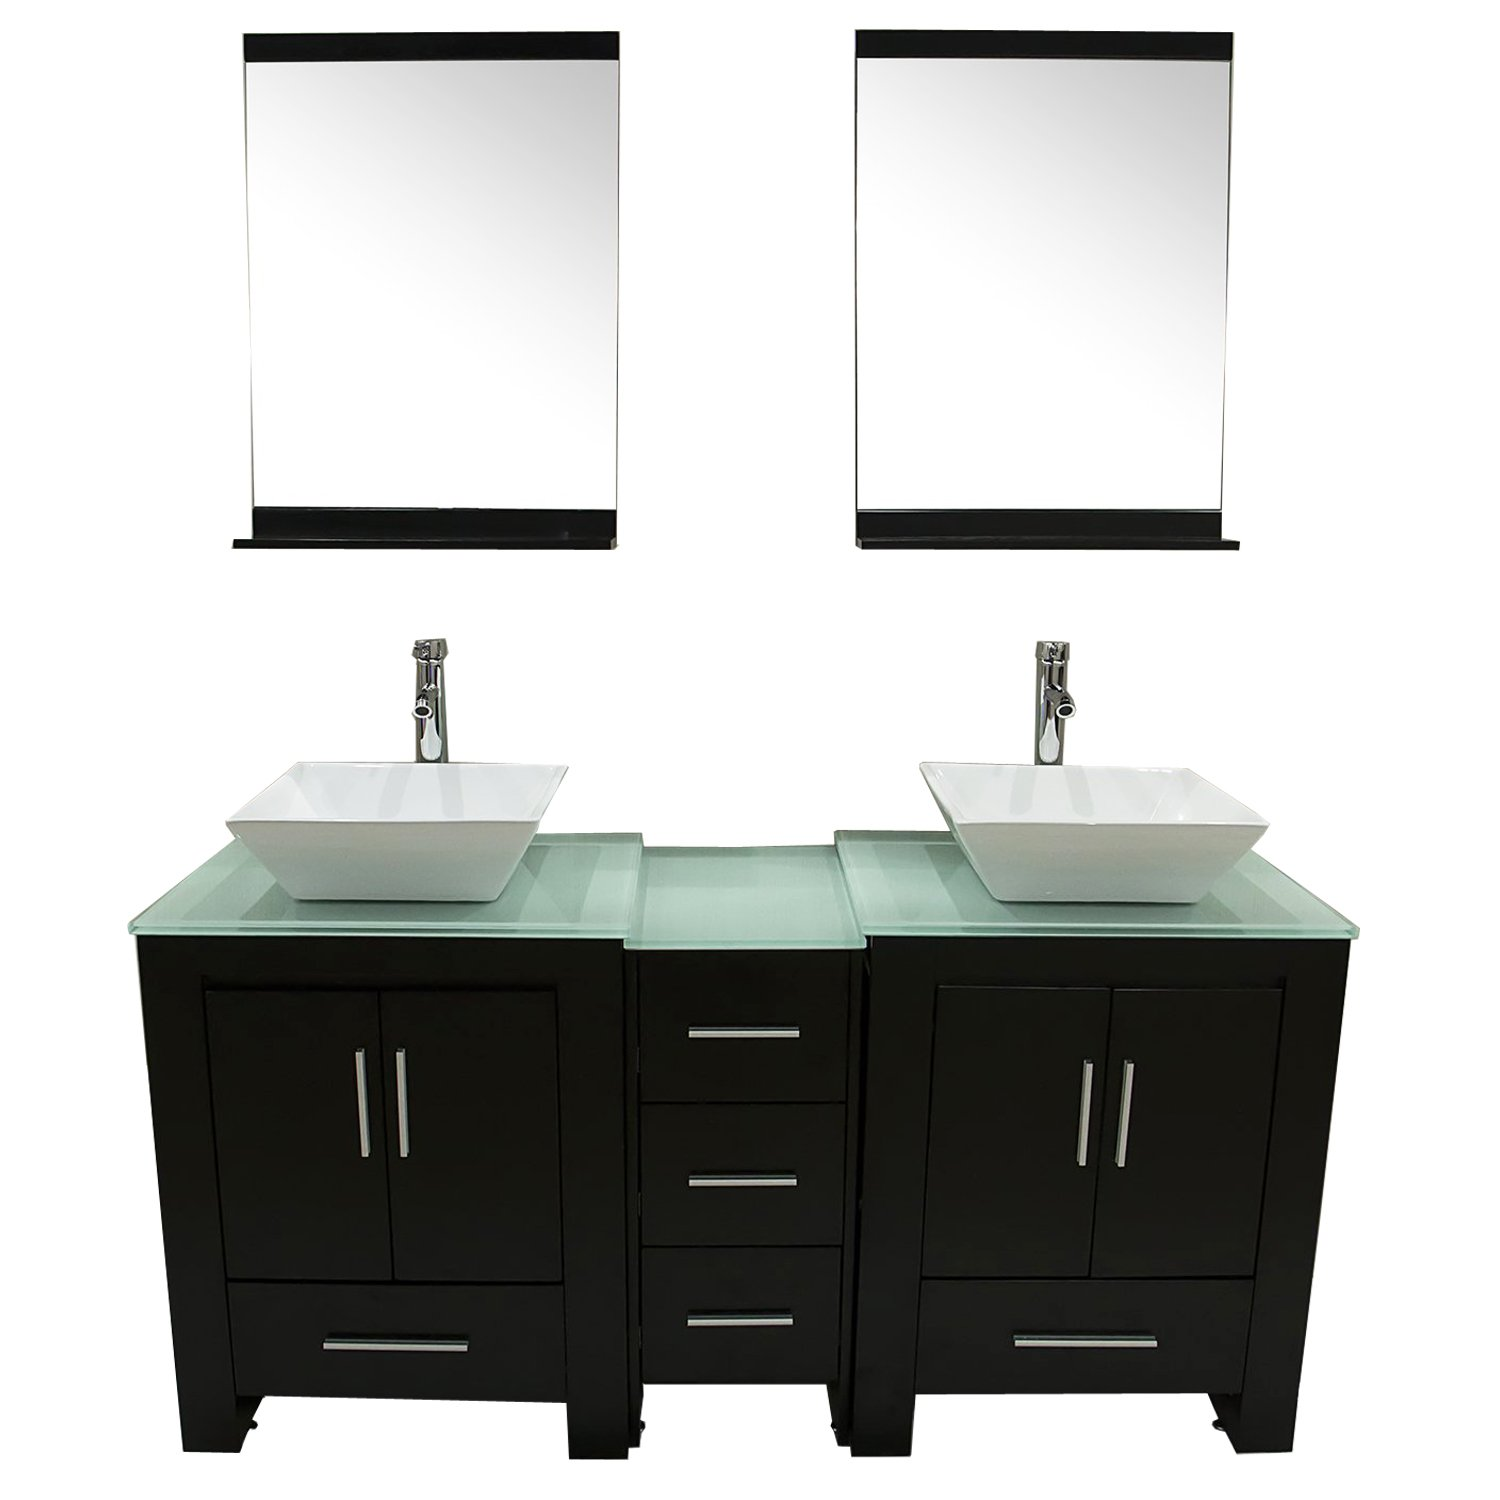 Walcut Luxury 60'' Modern Double Ceramic Sink Solid Wood Bathroom Vanity Cabinet With Mirror And Tempered Glass Table Board